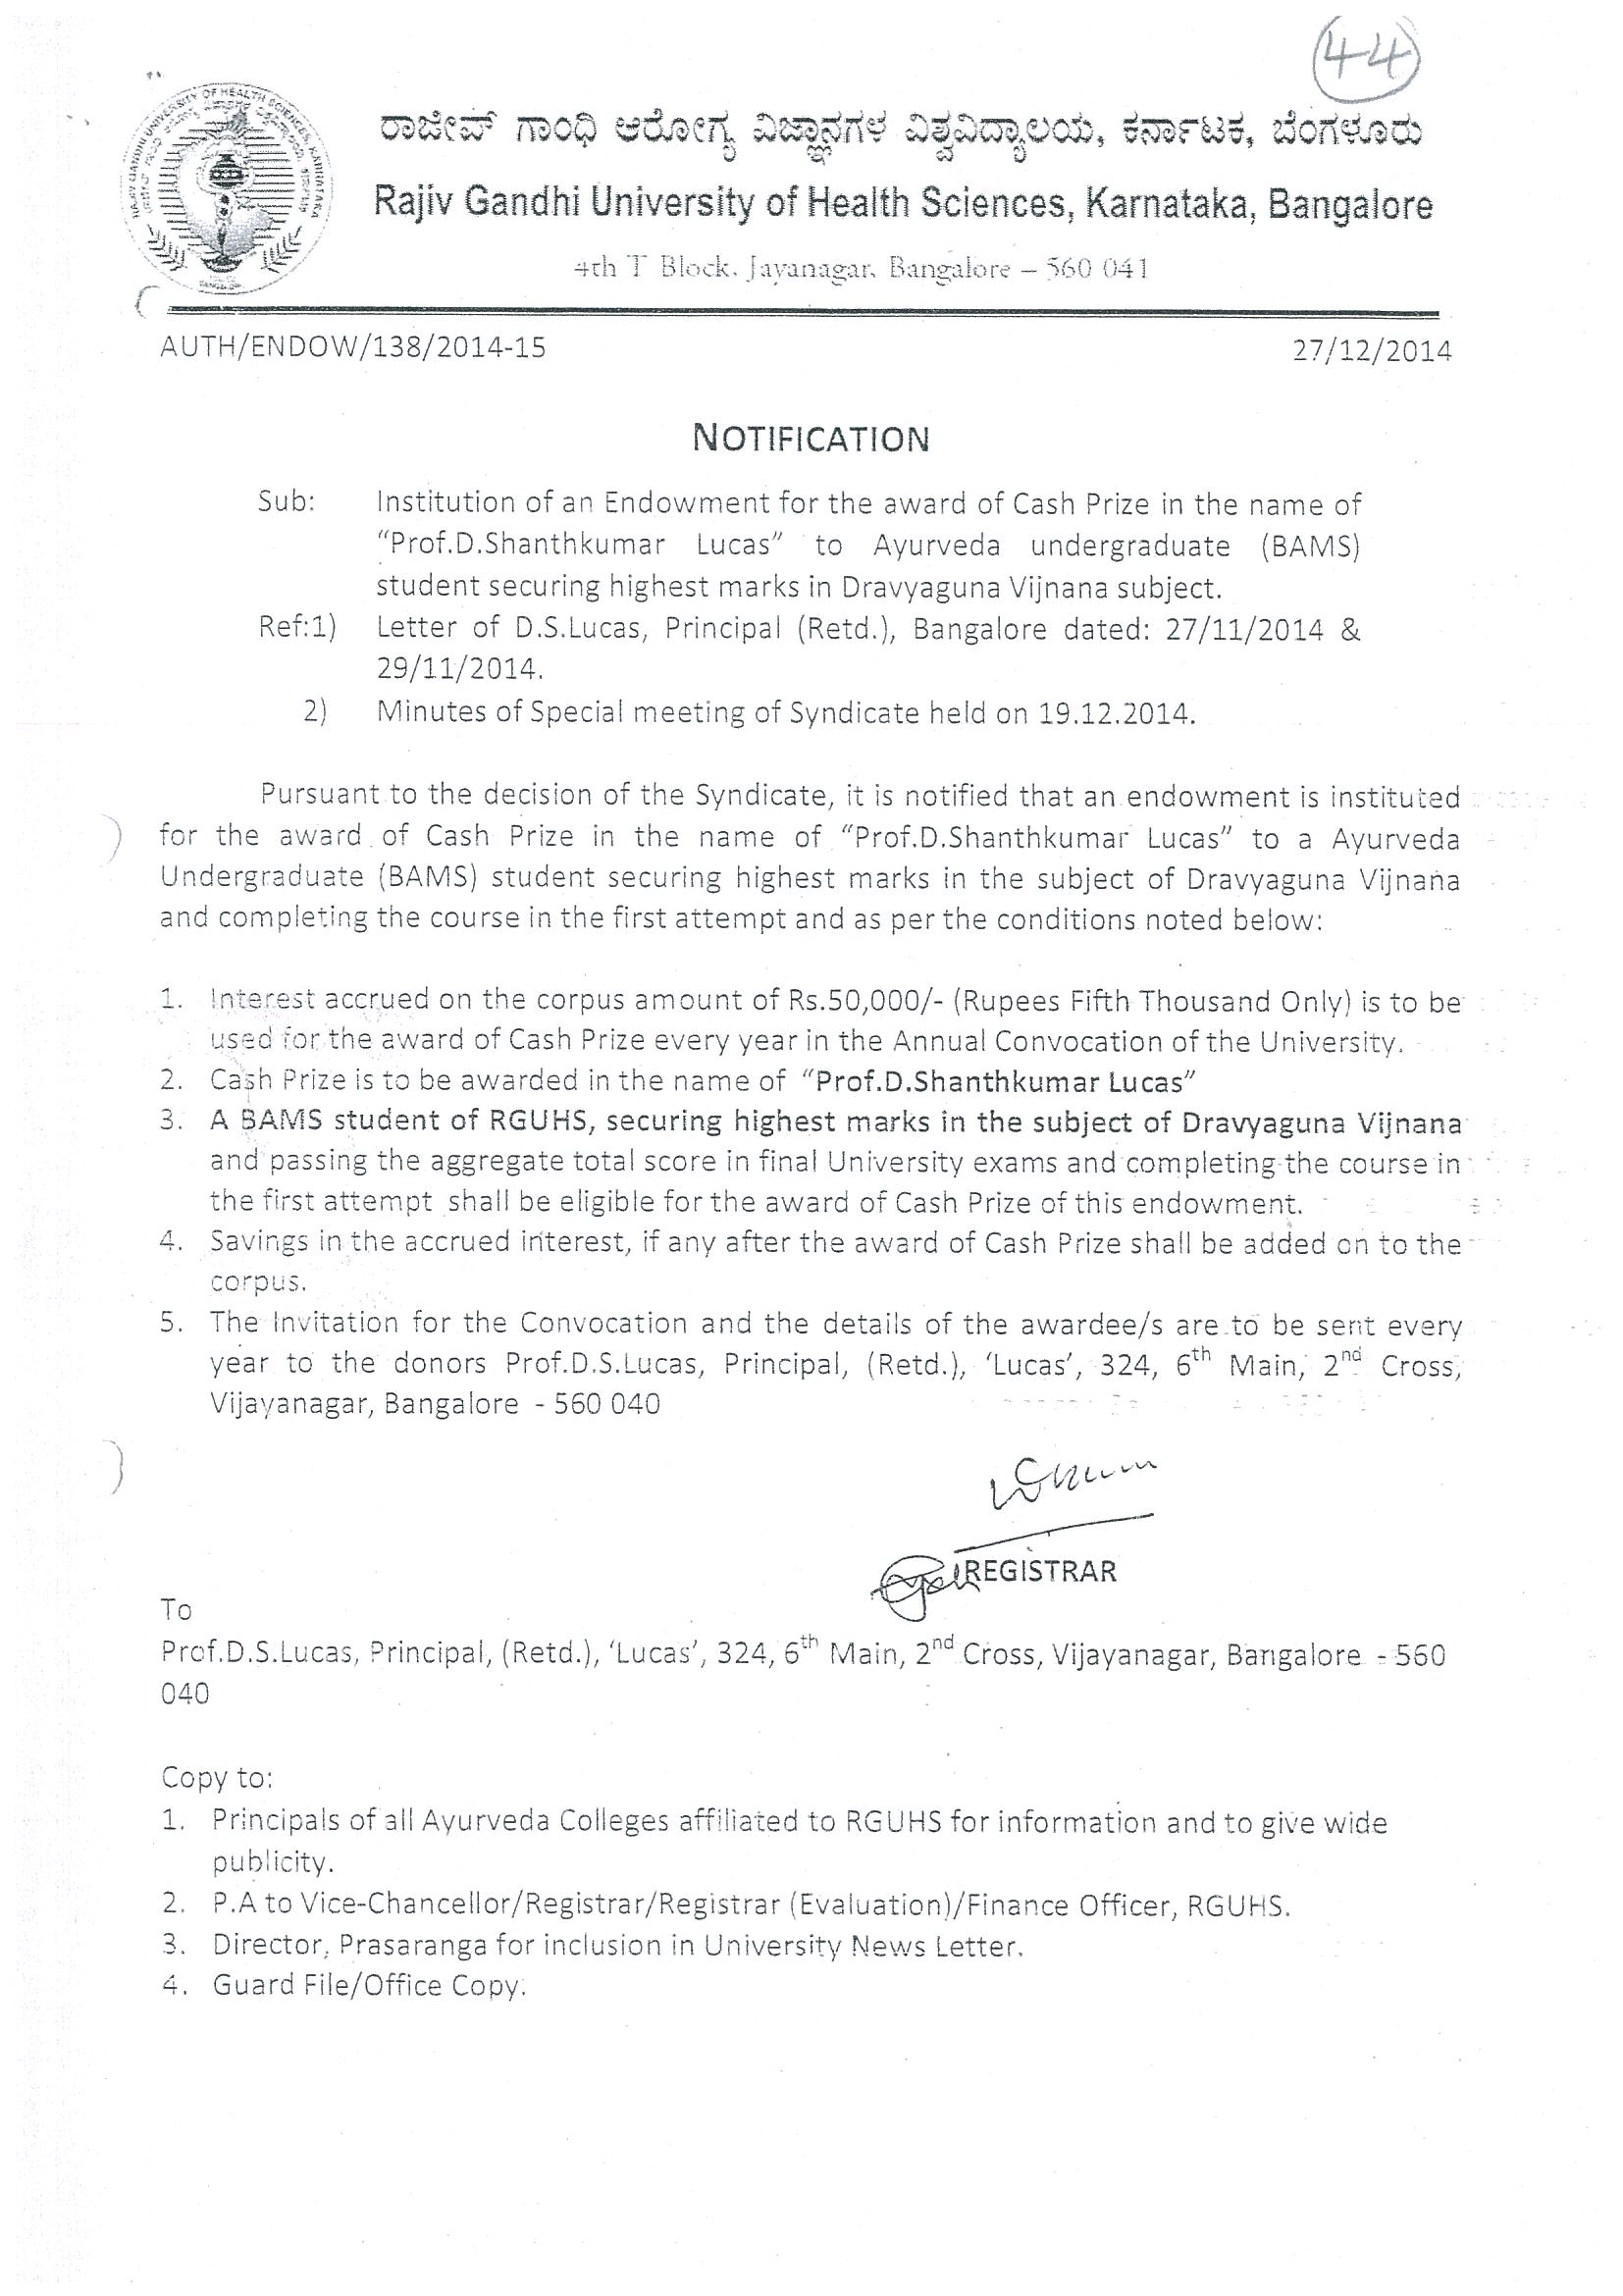 university notification no authendow1382014 15 dated 27122014 institution of an endowment for the award of cash prize in the name of prof